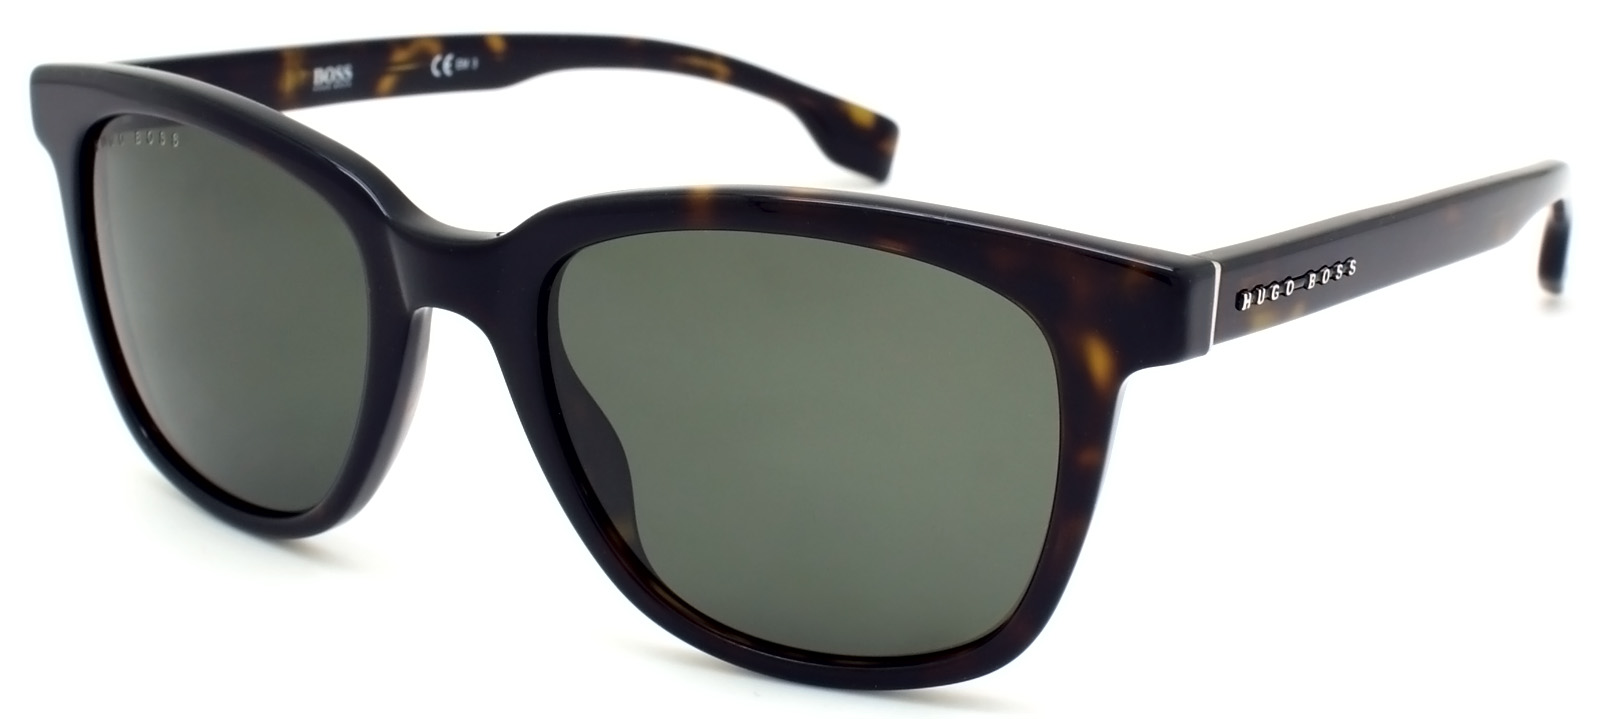 Hugo Boss 1037/S 086 QT